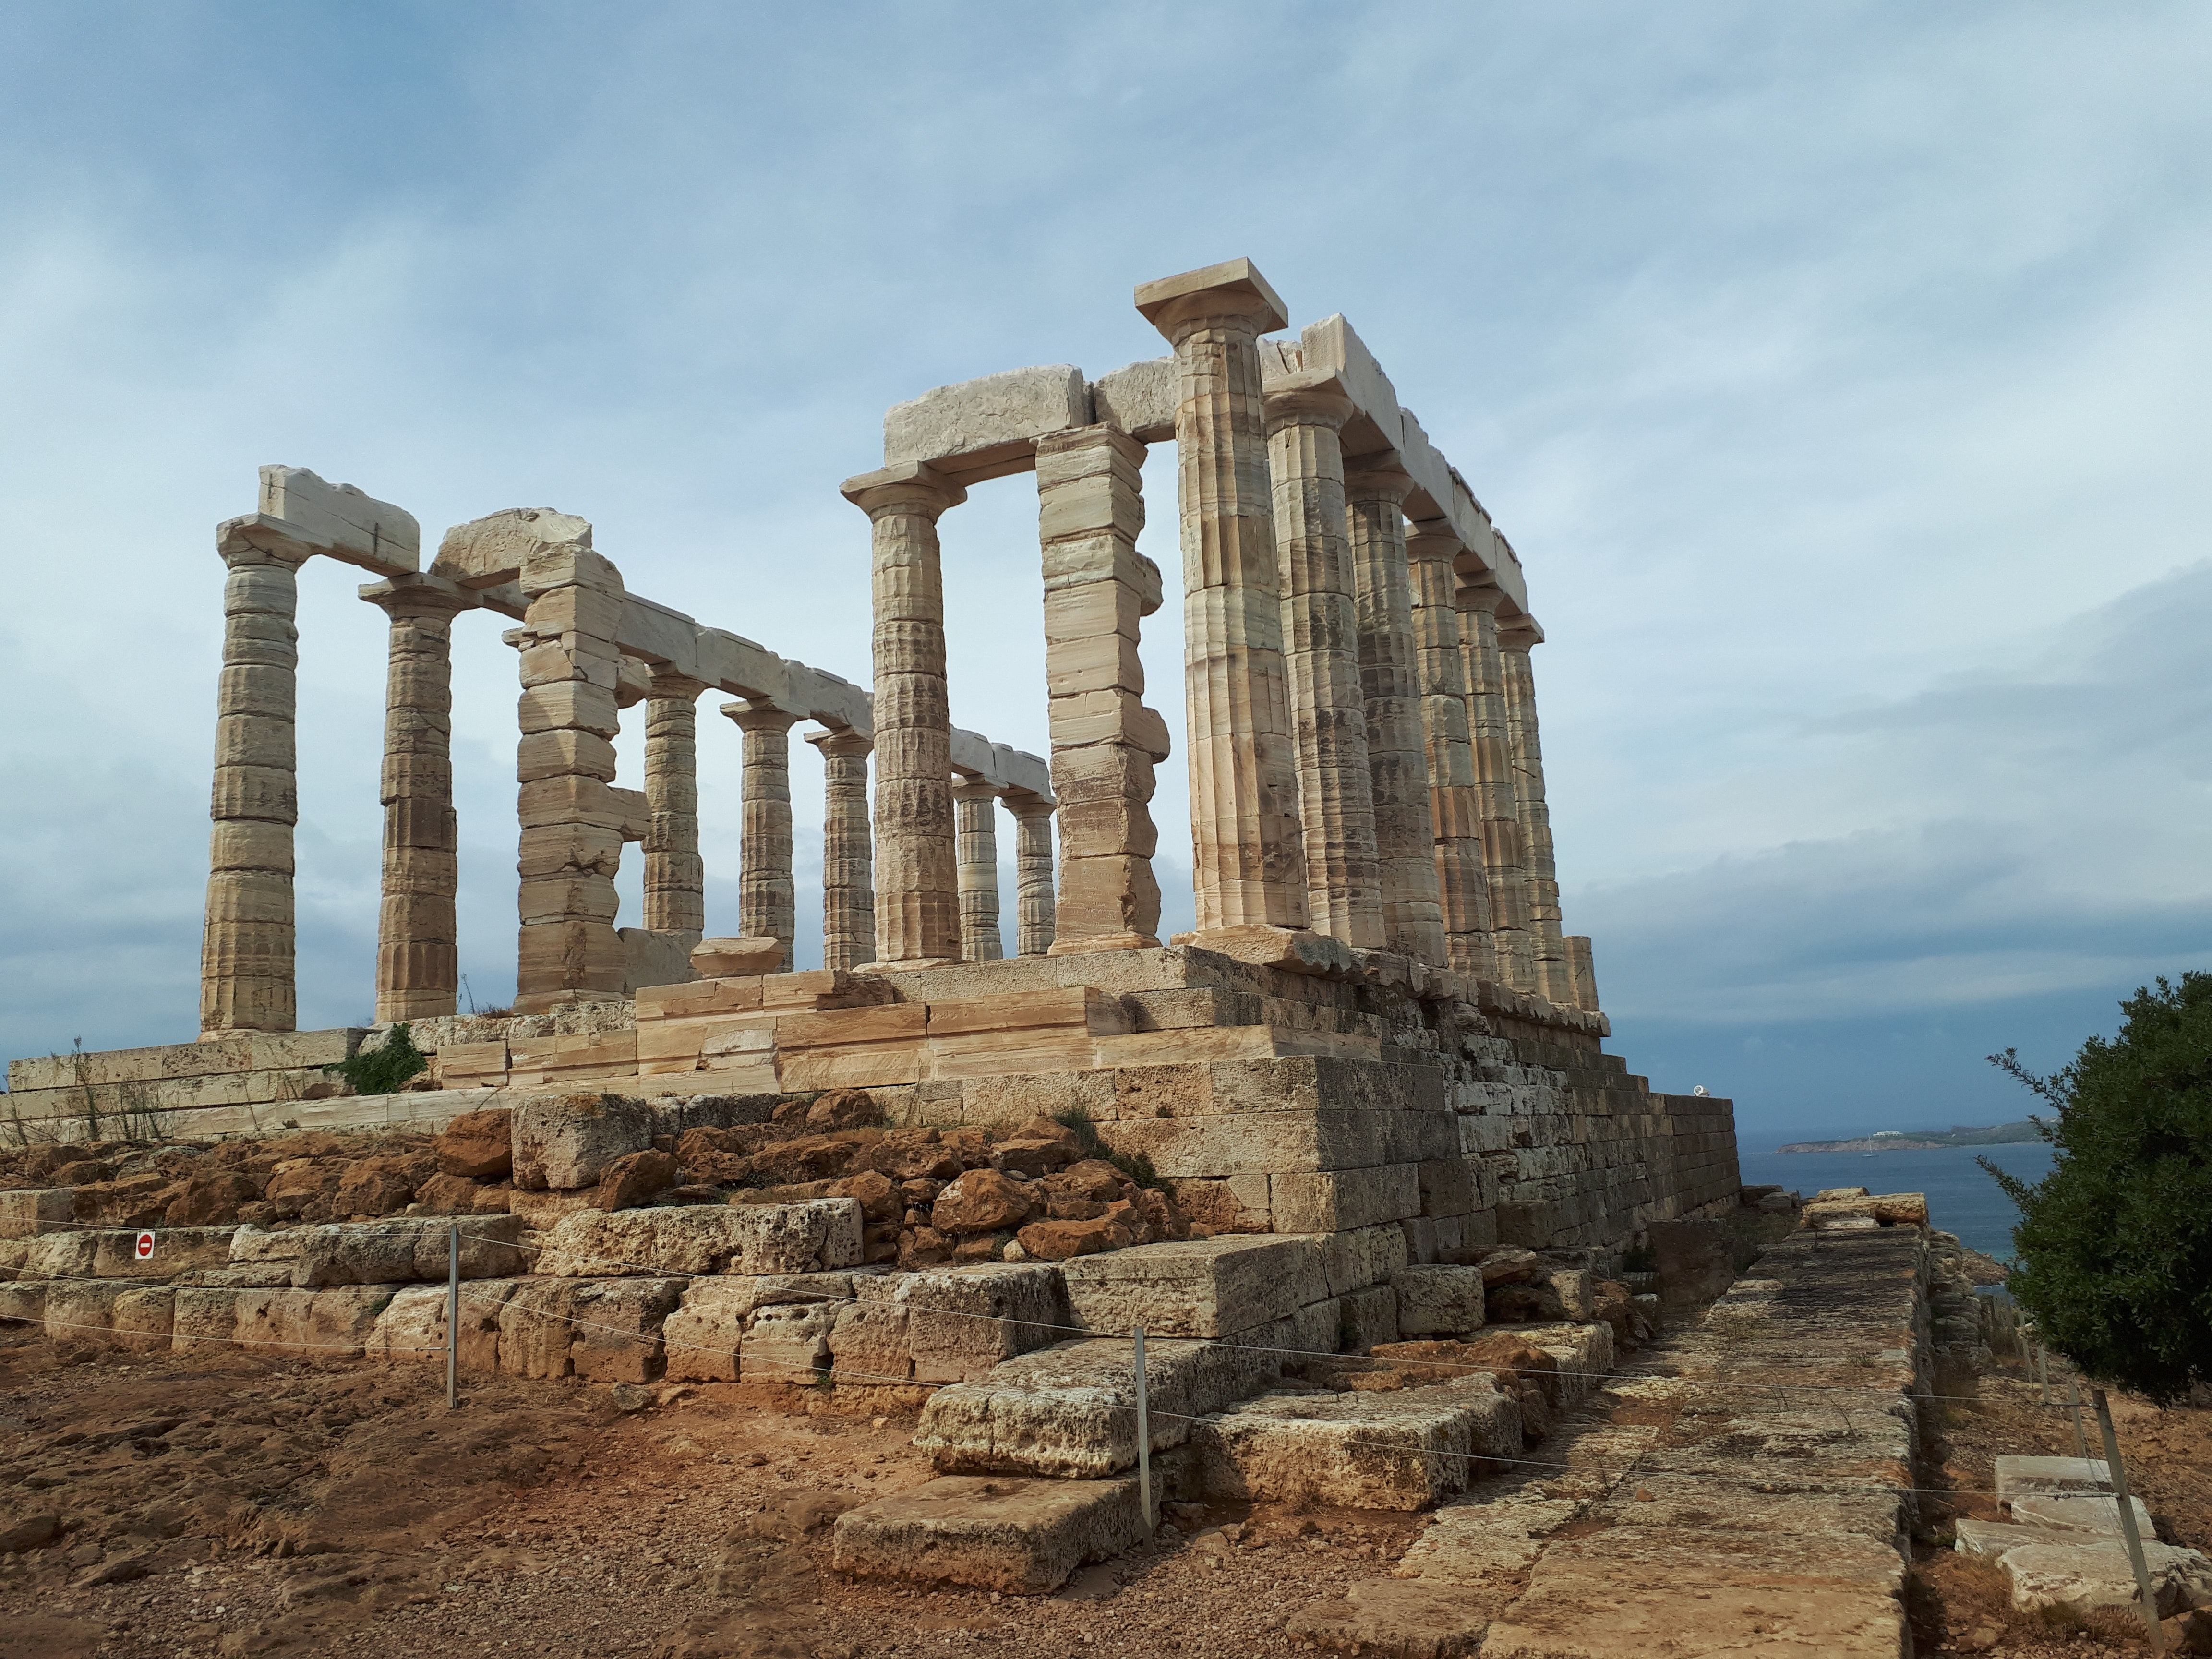 Temple of Poseidon, Best historical sites to visit in Athens Greece